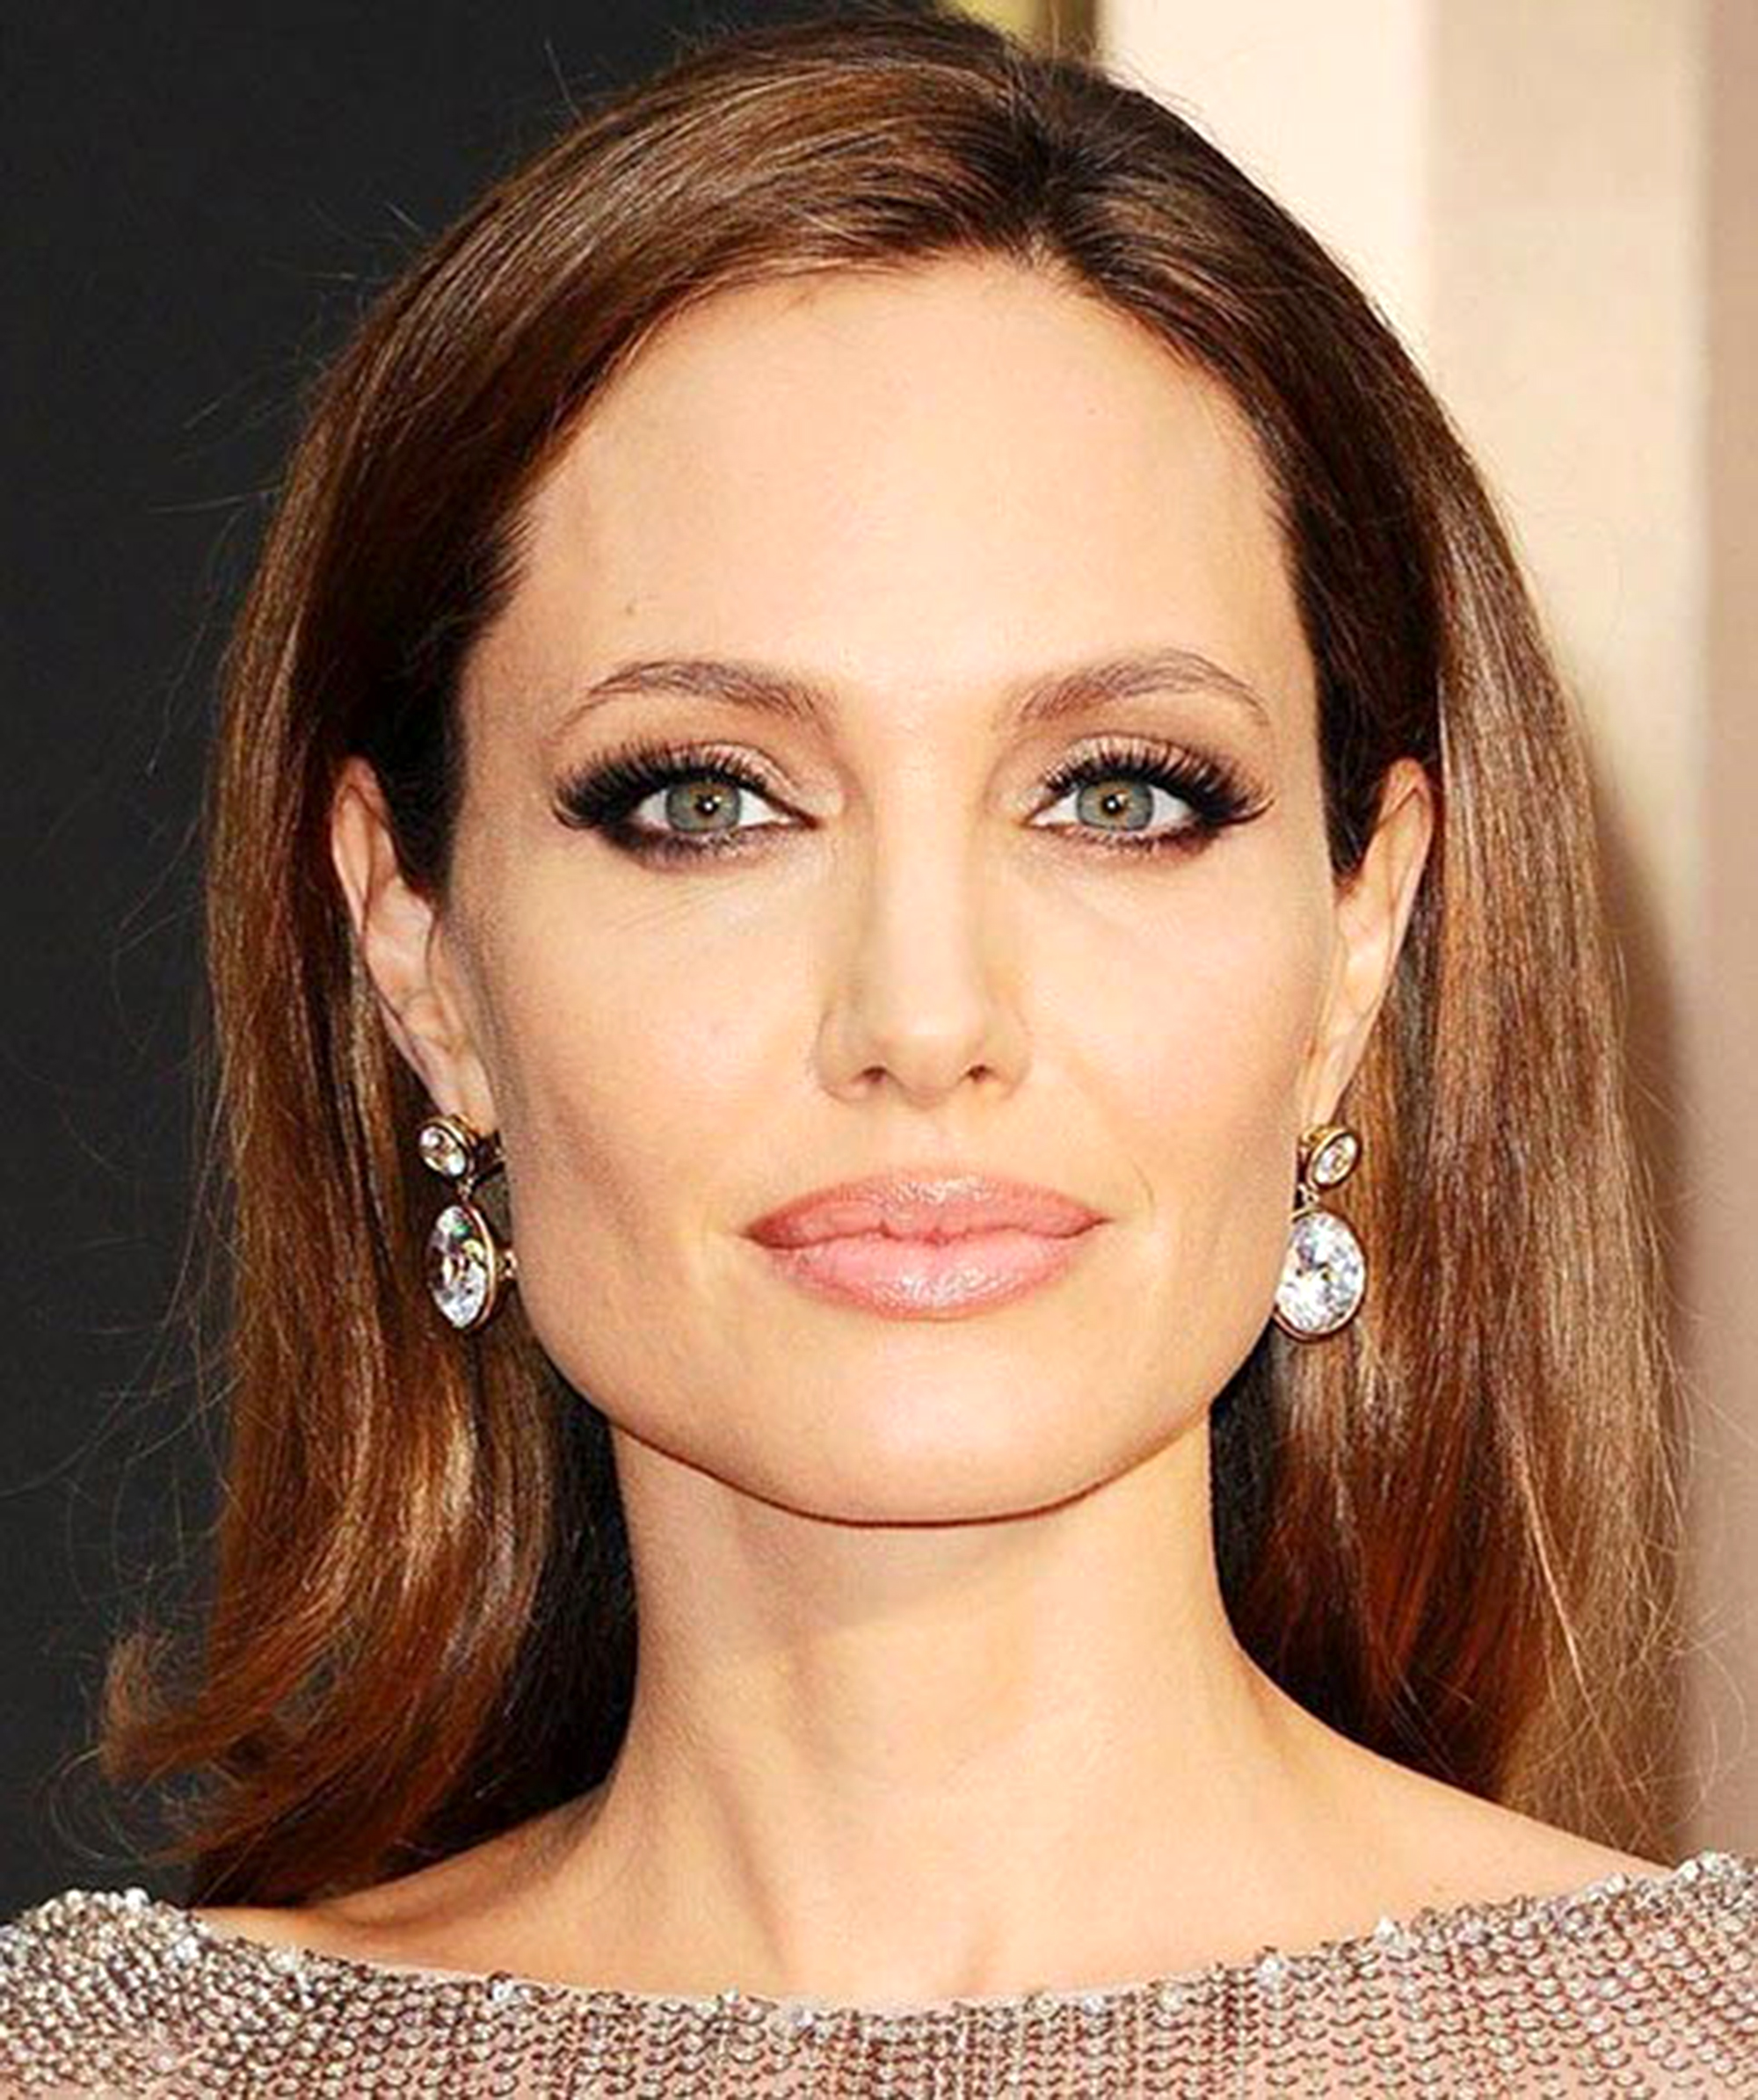 The Look Angelina Jolie Inspired By The Oscars